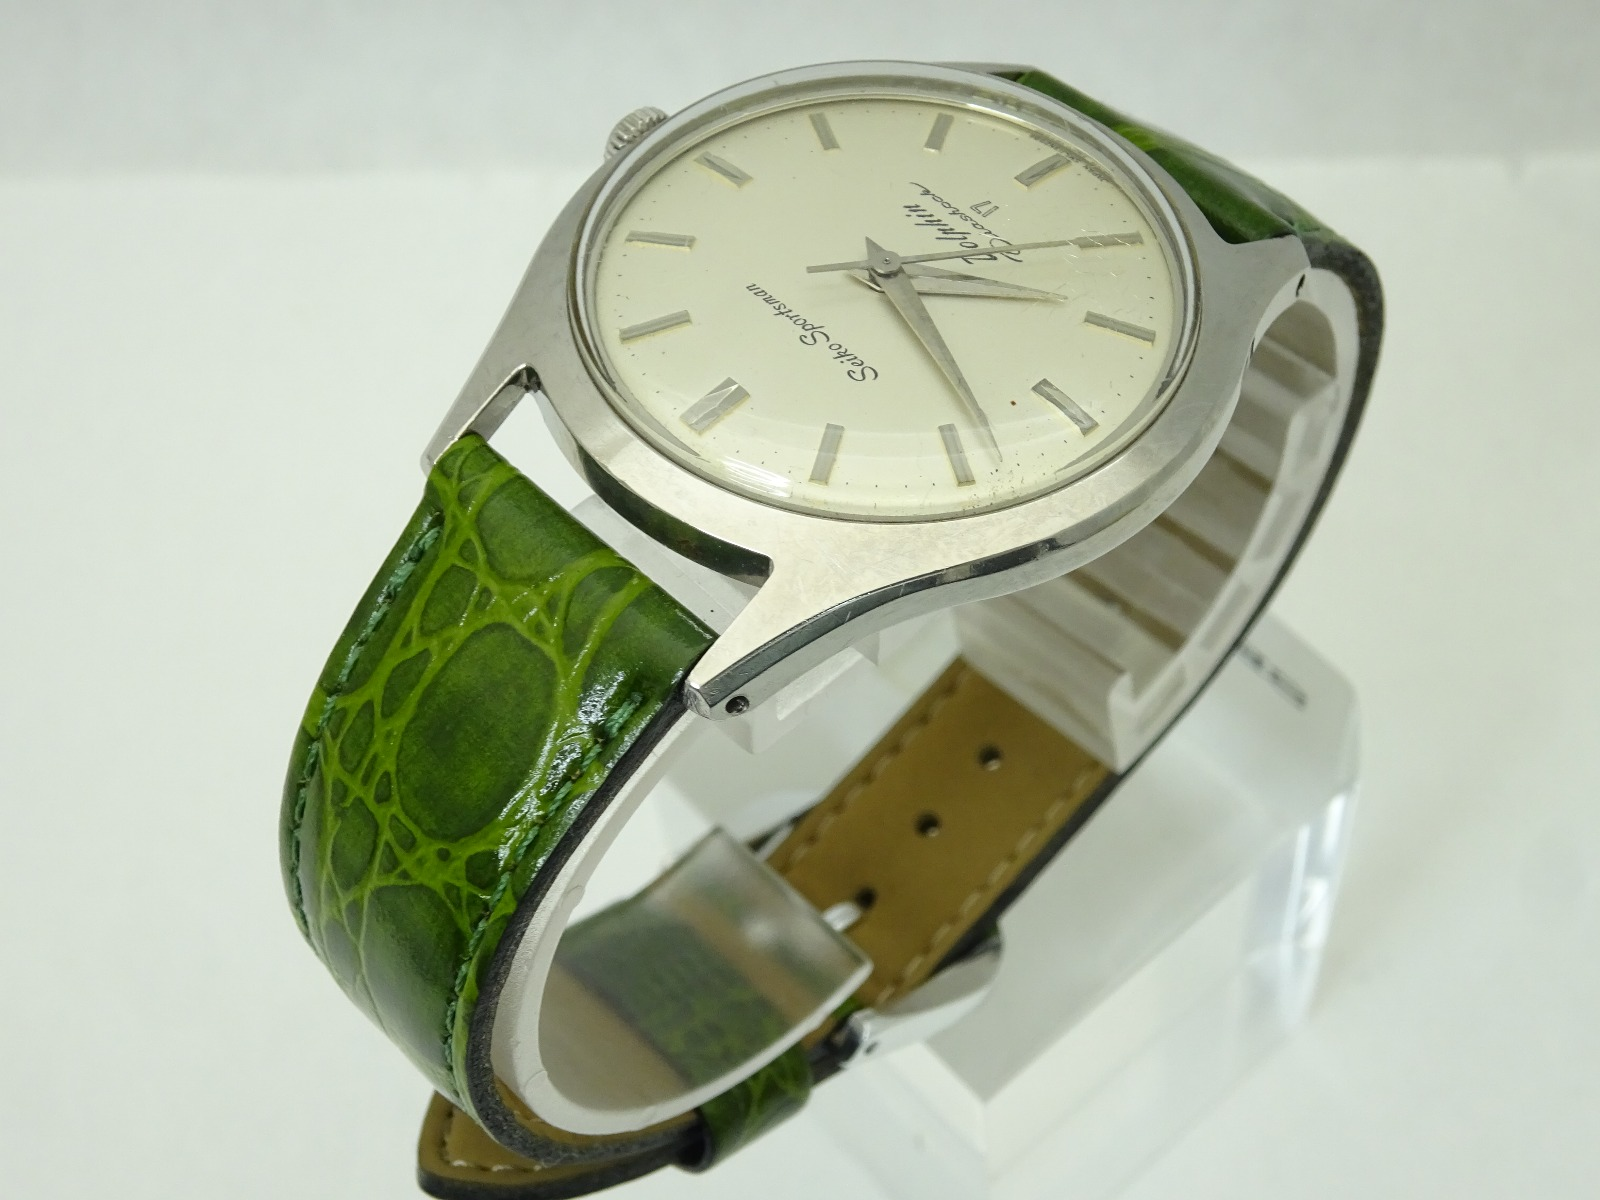 Vintage 1961 JAPAN SEIKO SPORTSMAN Dolphin J13035 17Jewels Hand-winding.